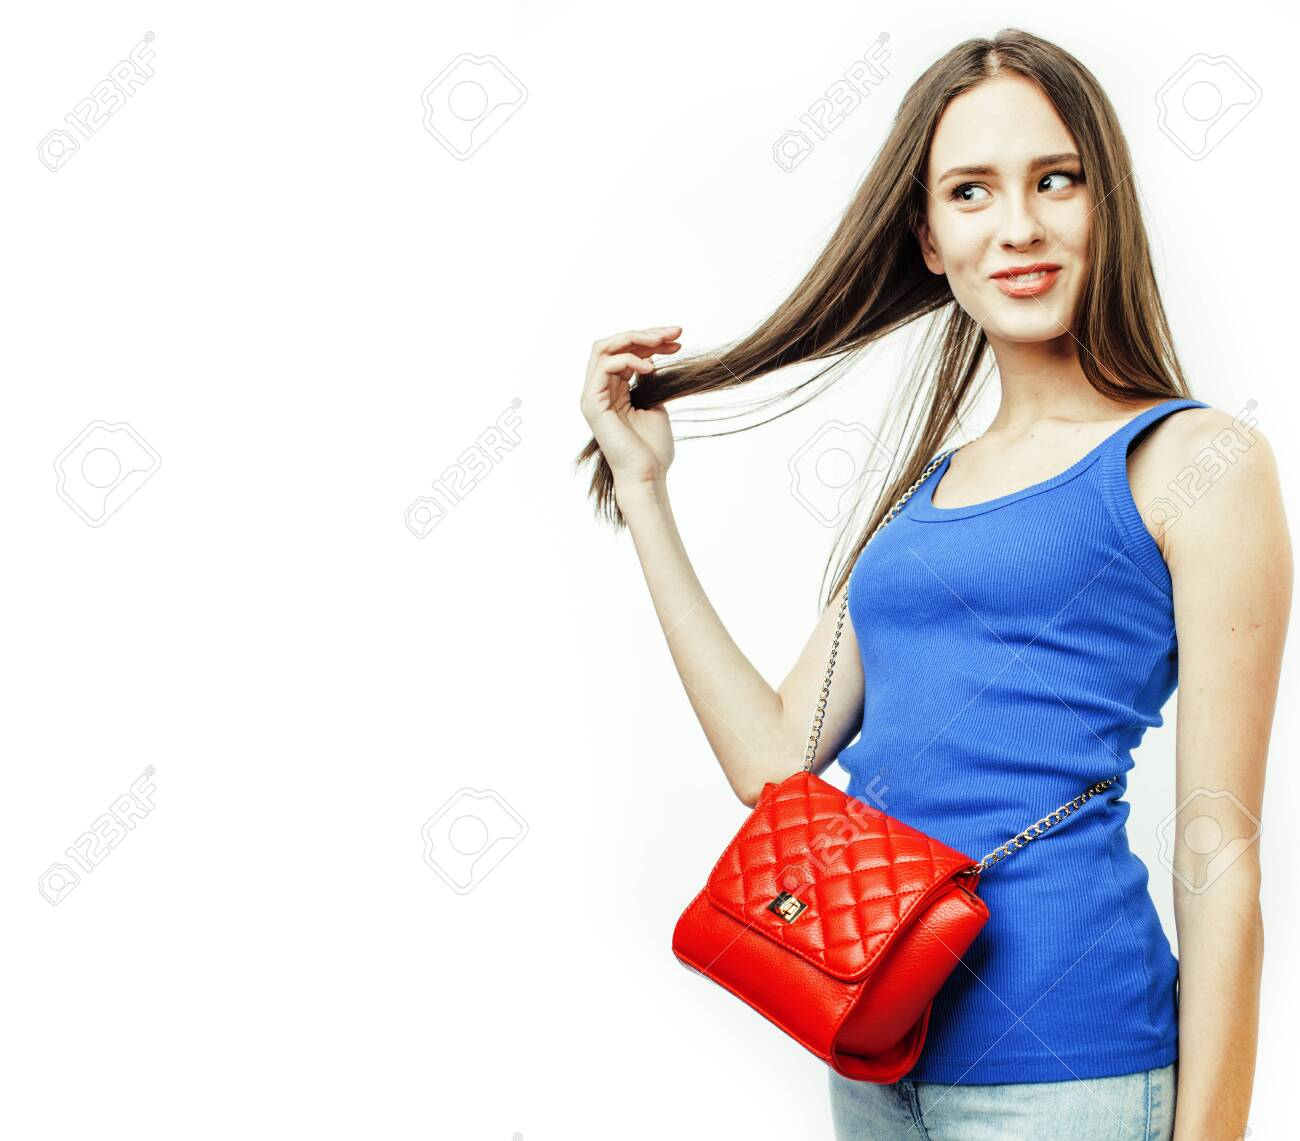 young pretty stylish hipster girl posing emotional isolated on white background happy smiling cool smile, lifestyle people concept close up - 131304374